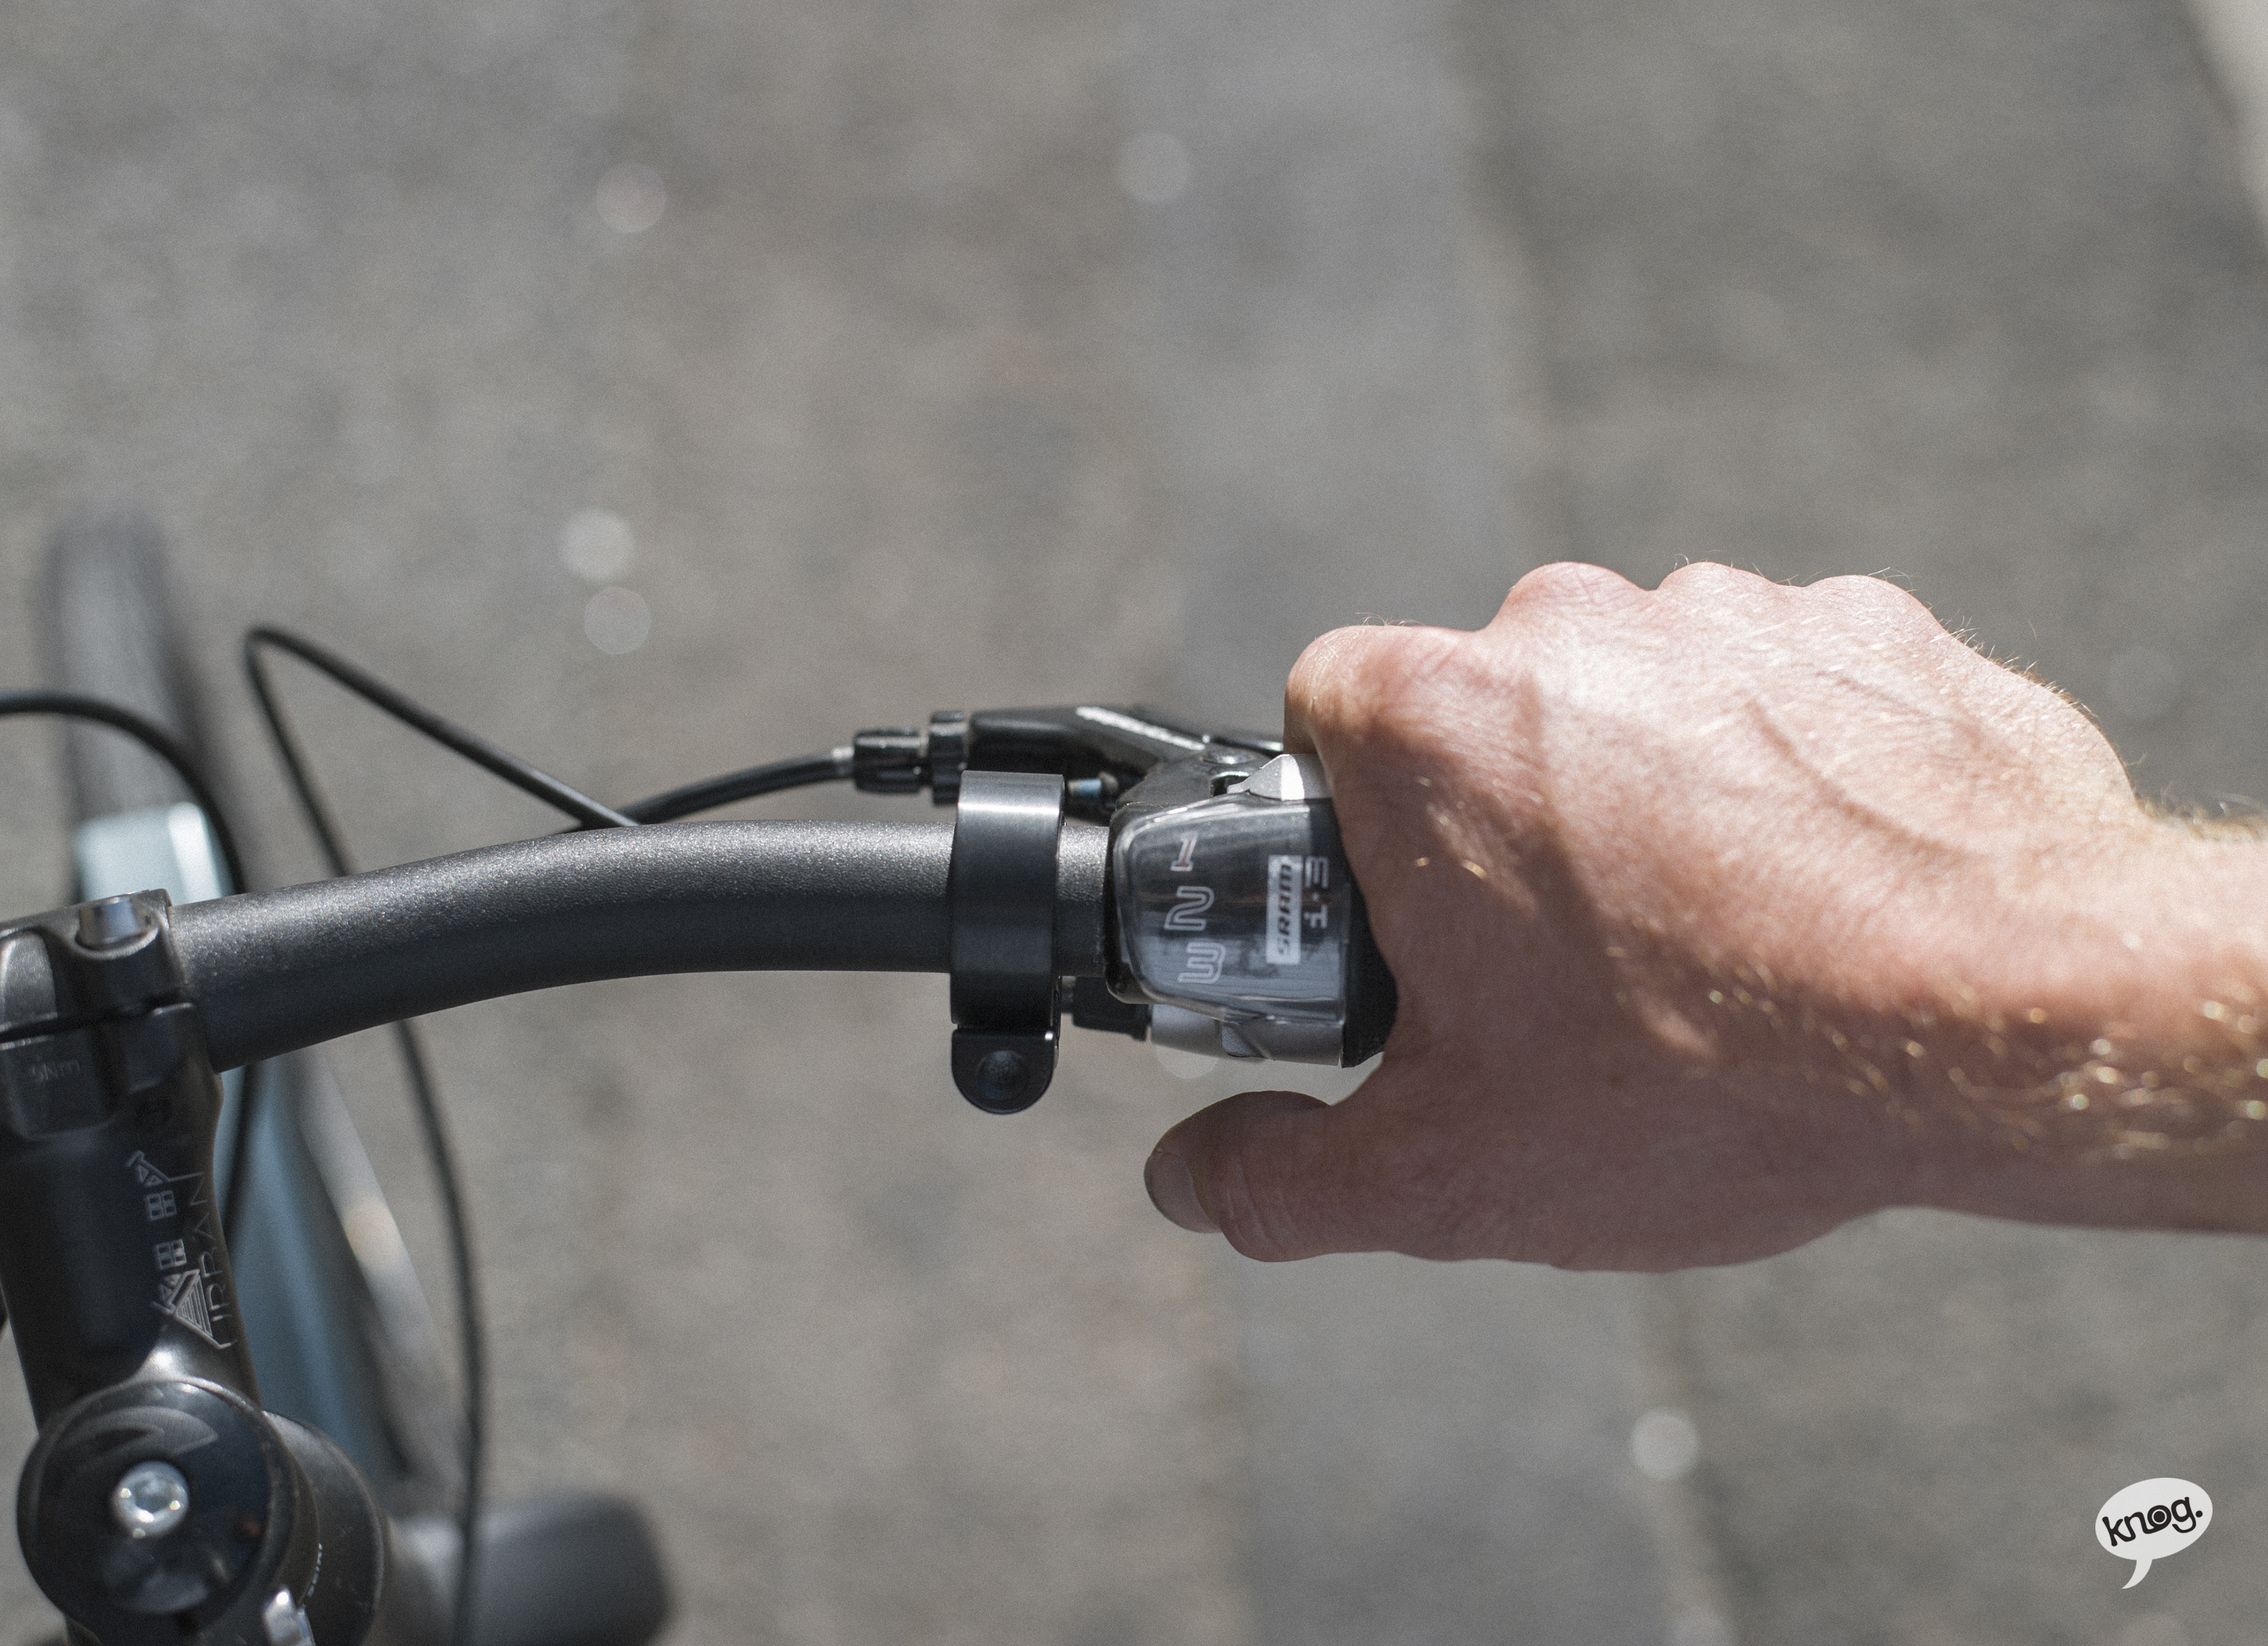 Can you spot the bike bell? Photo: Courtesy of Knog